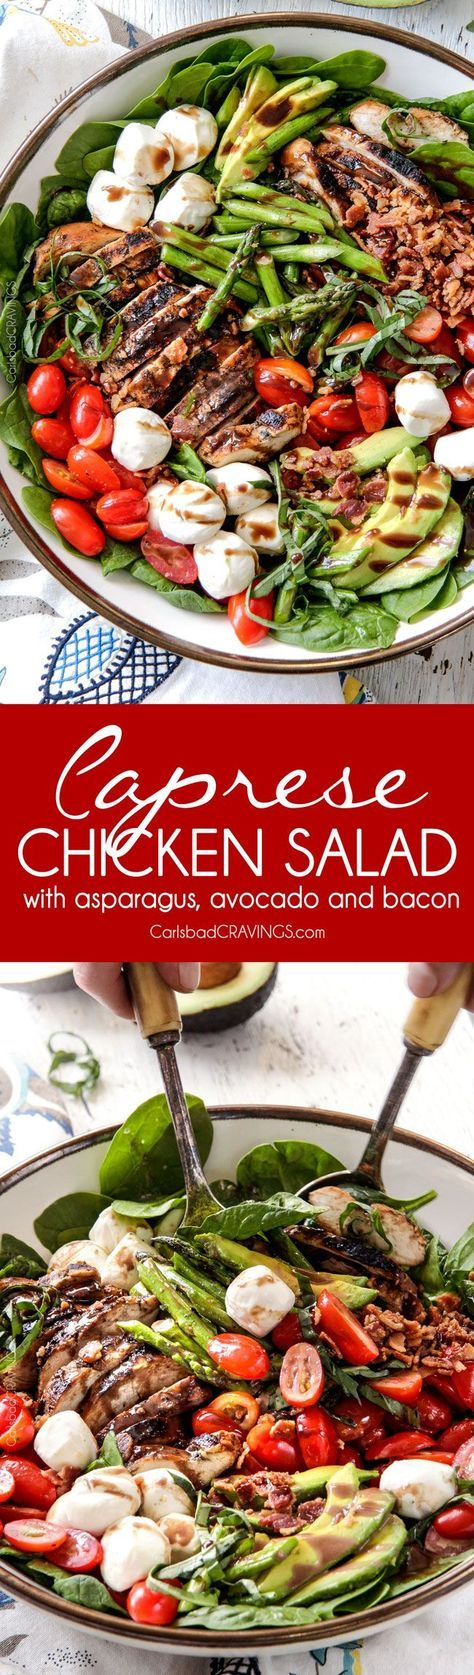 Grilled Caprese Chicken Salad with the most incredible balsamic marinated chicken, fresh tomatoes, creamy mozzarella, grilled asparagus, creamy avocado and crispy bacon all drizzled with Creamy Balsamic Reduction Dressing. Out of this world! #summersalad #springsalad #ad